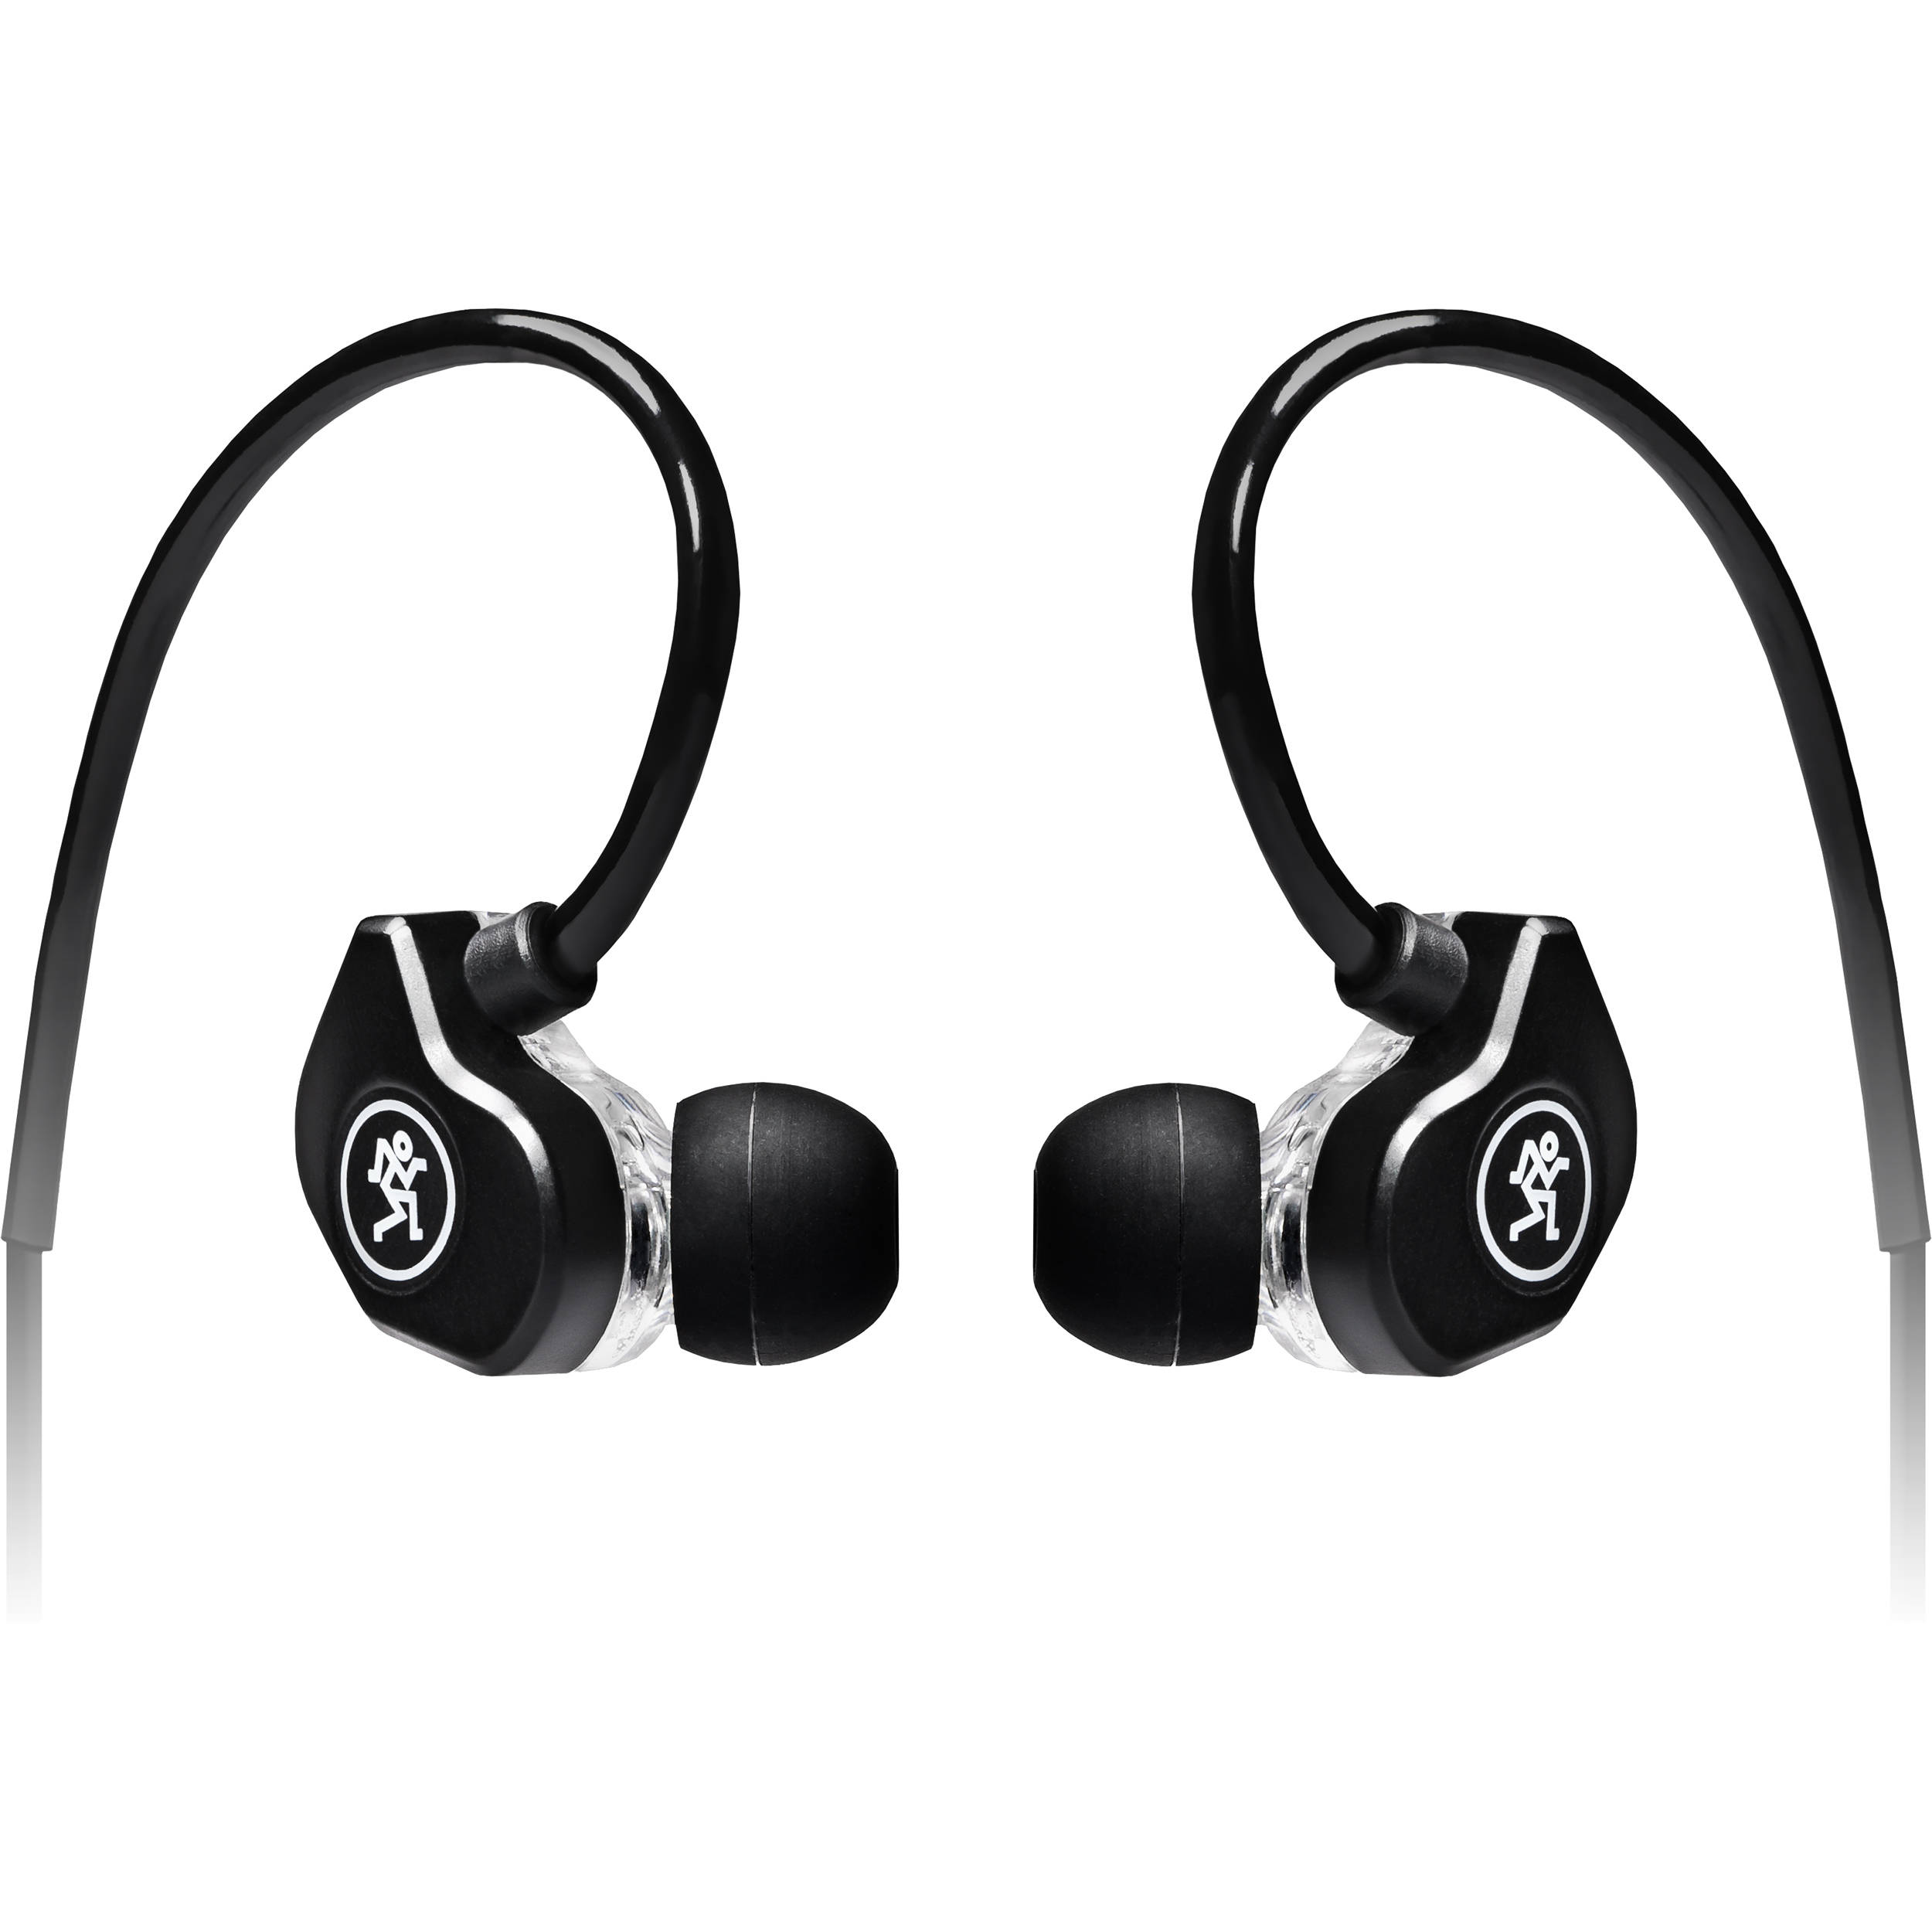 Mackie CR-Buds+ In-Ear Headphones with In-Line Microphone & Remote (Black)